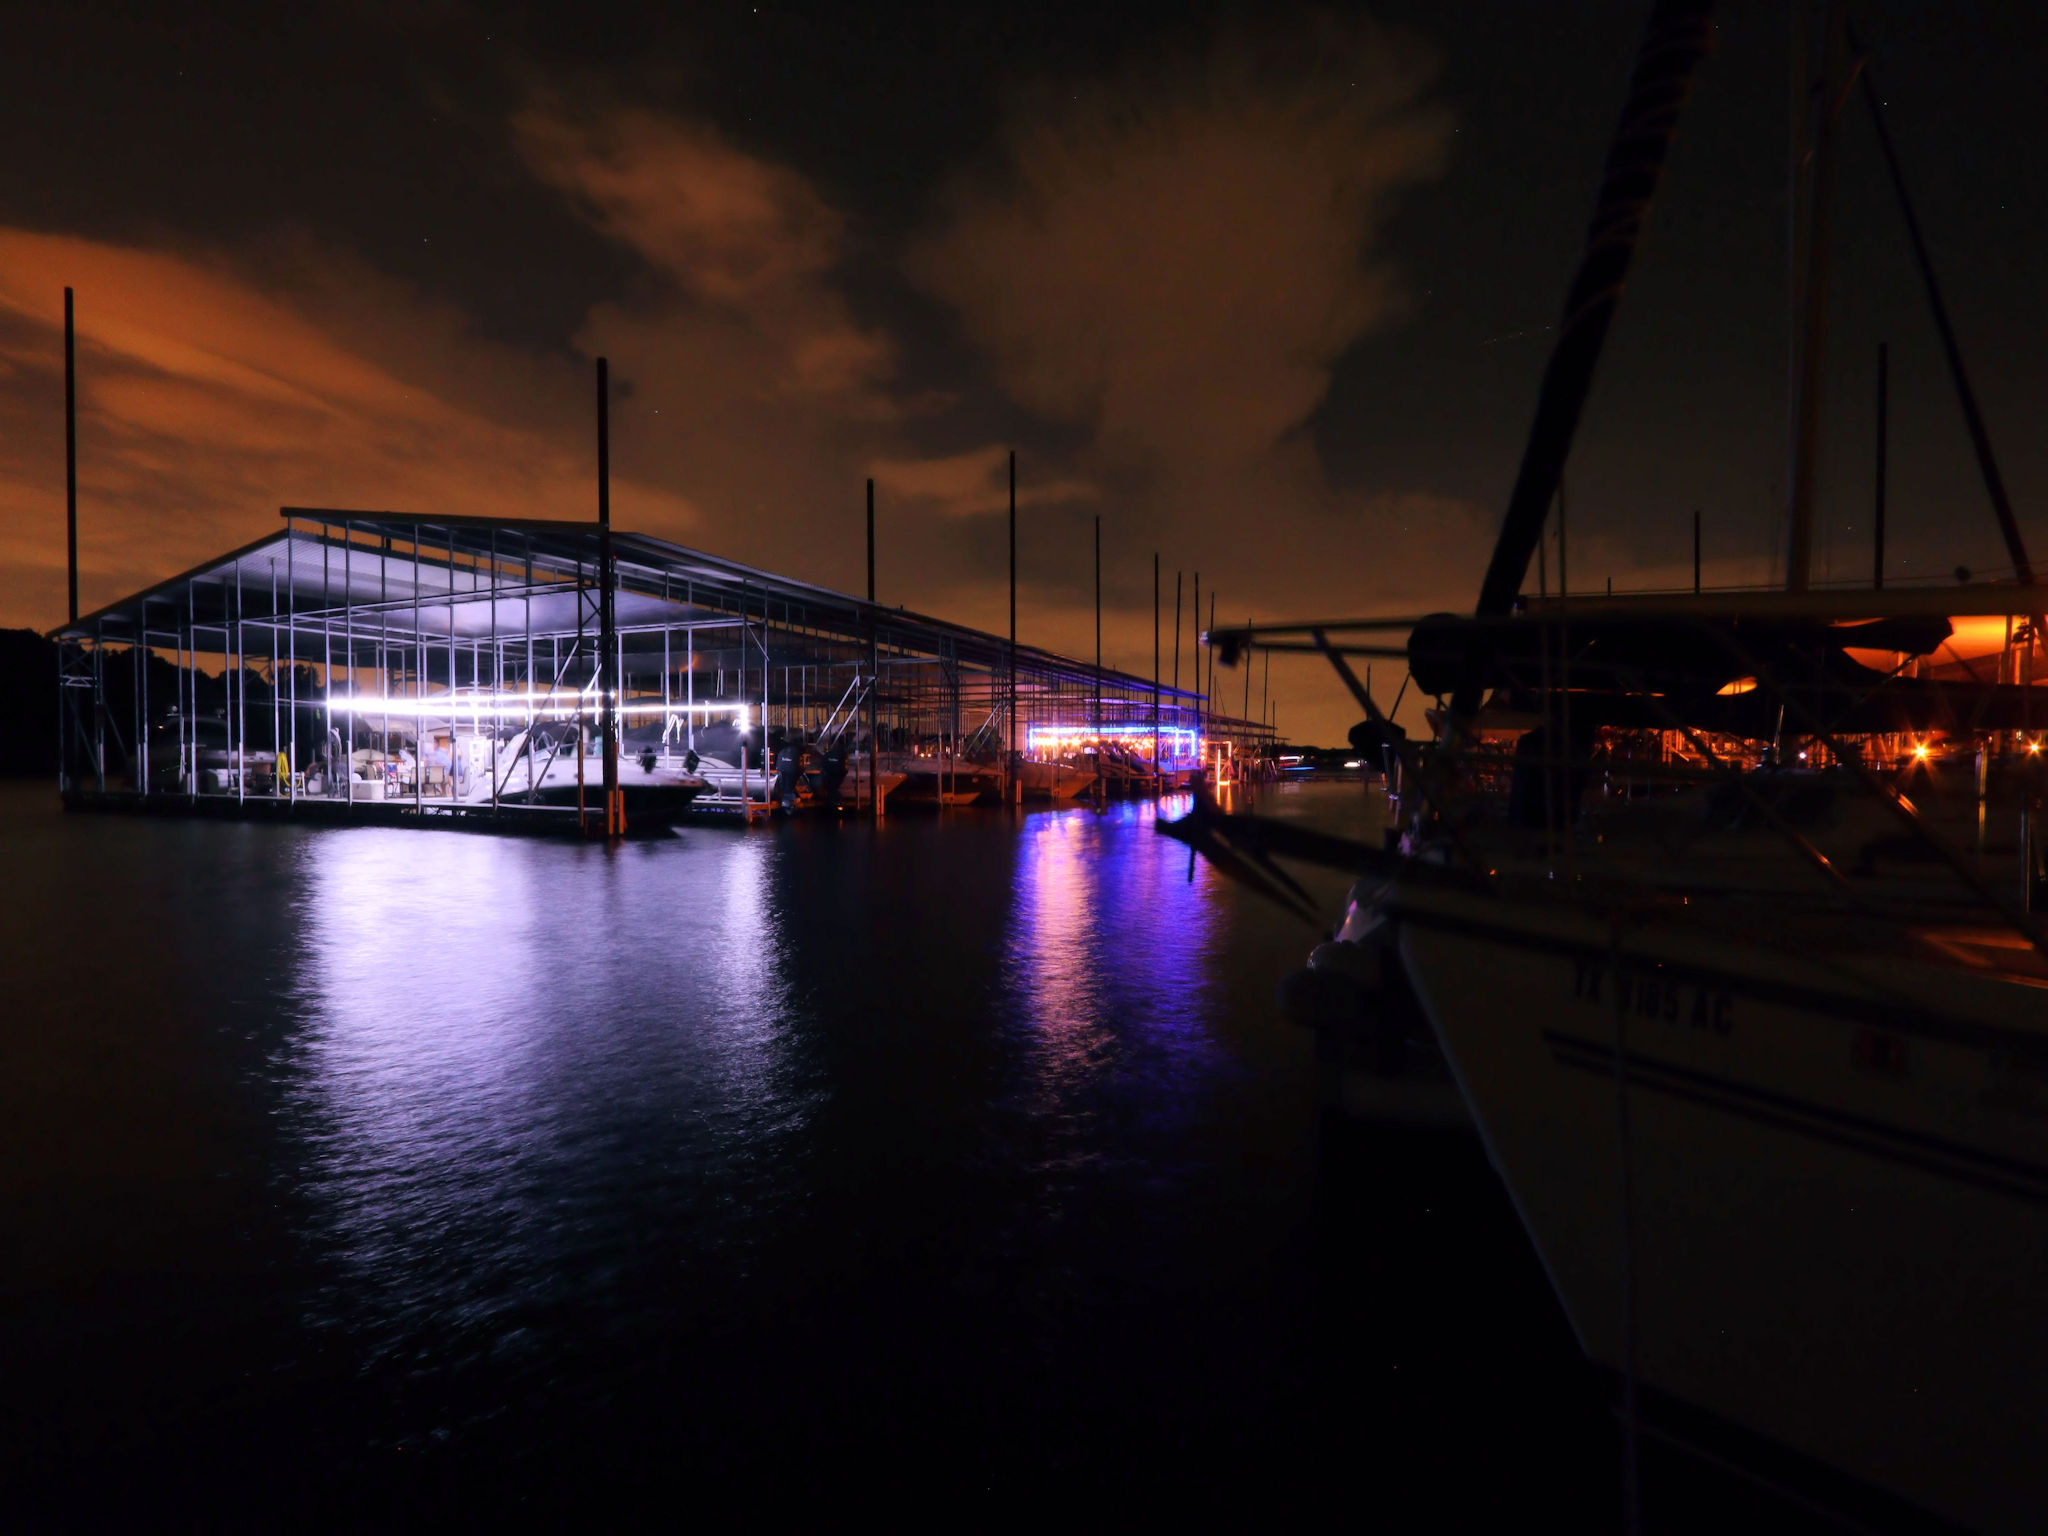 docks at night.jpg